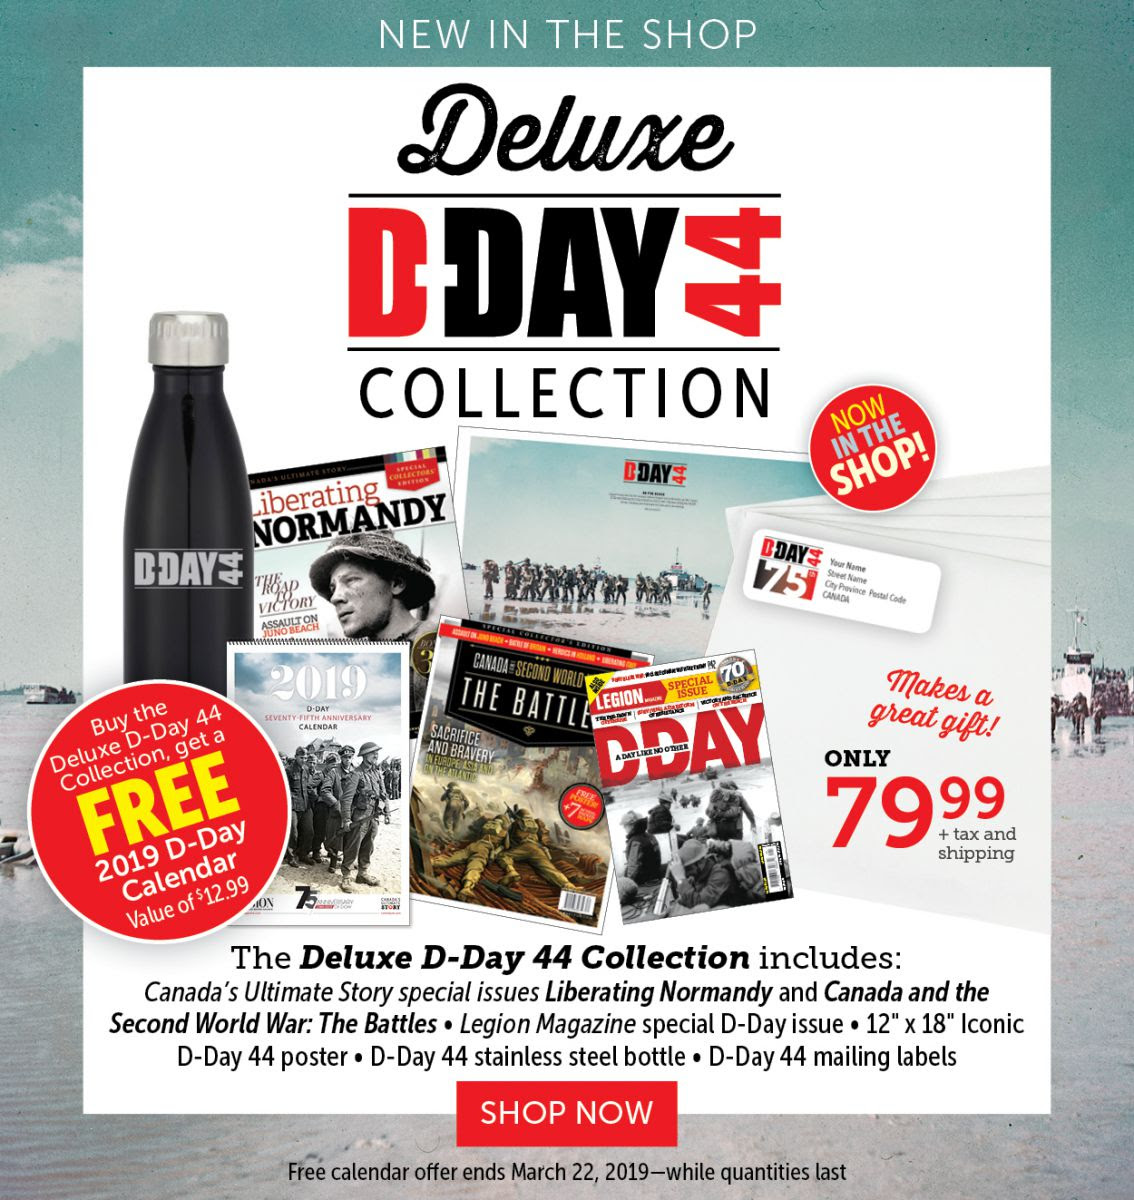 Deluxe D-DAY Collection | NEW IN SHOP